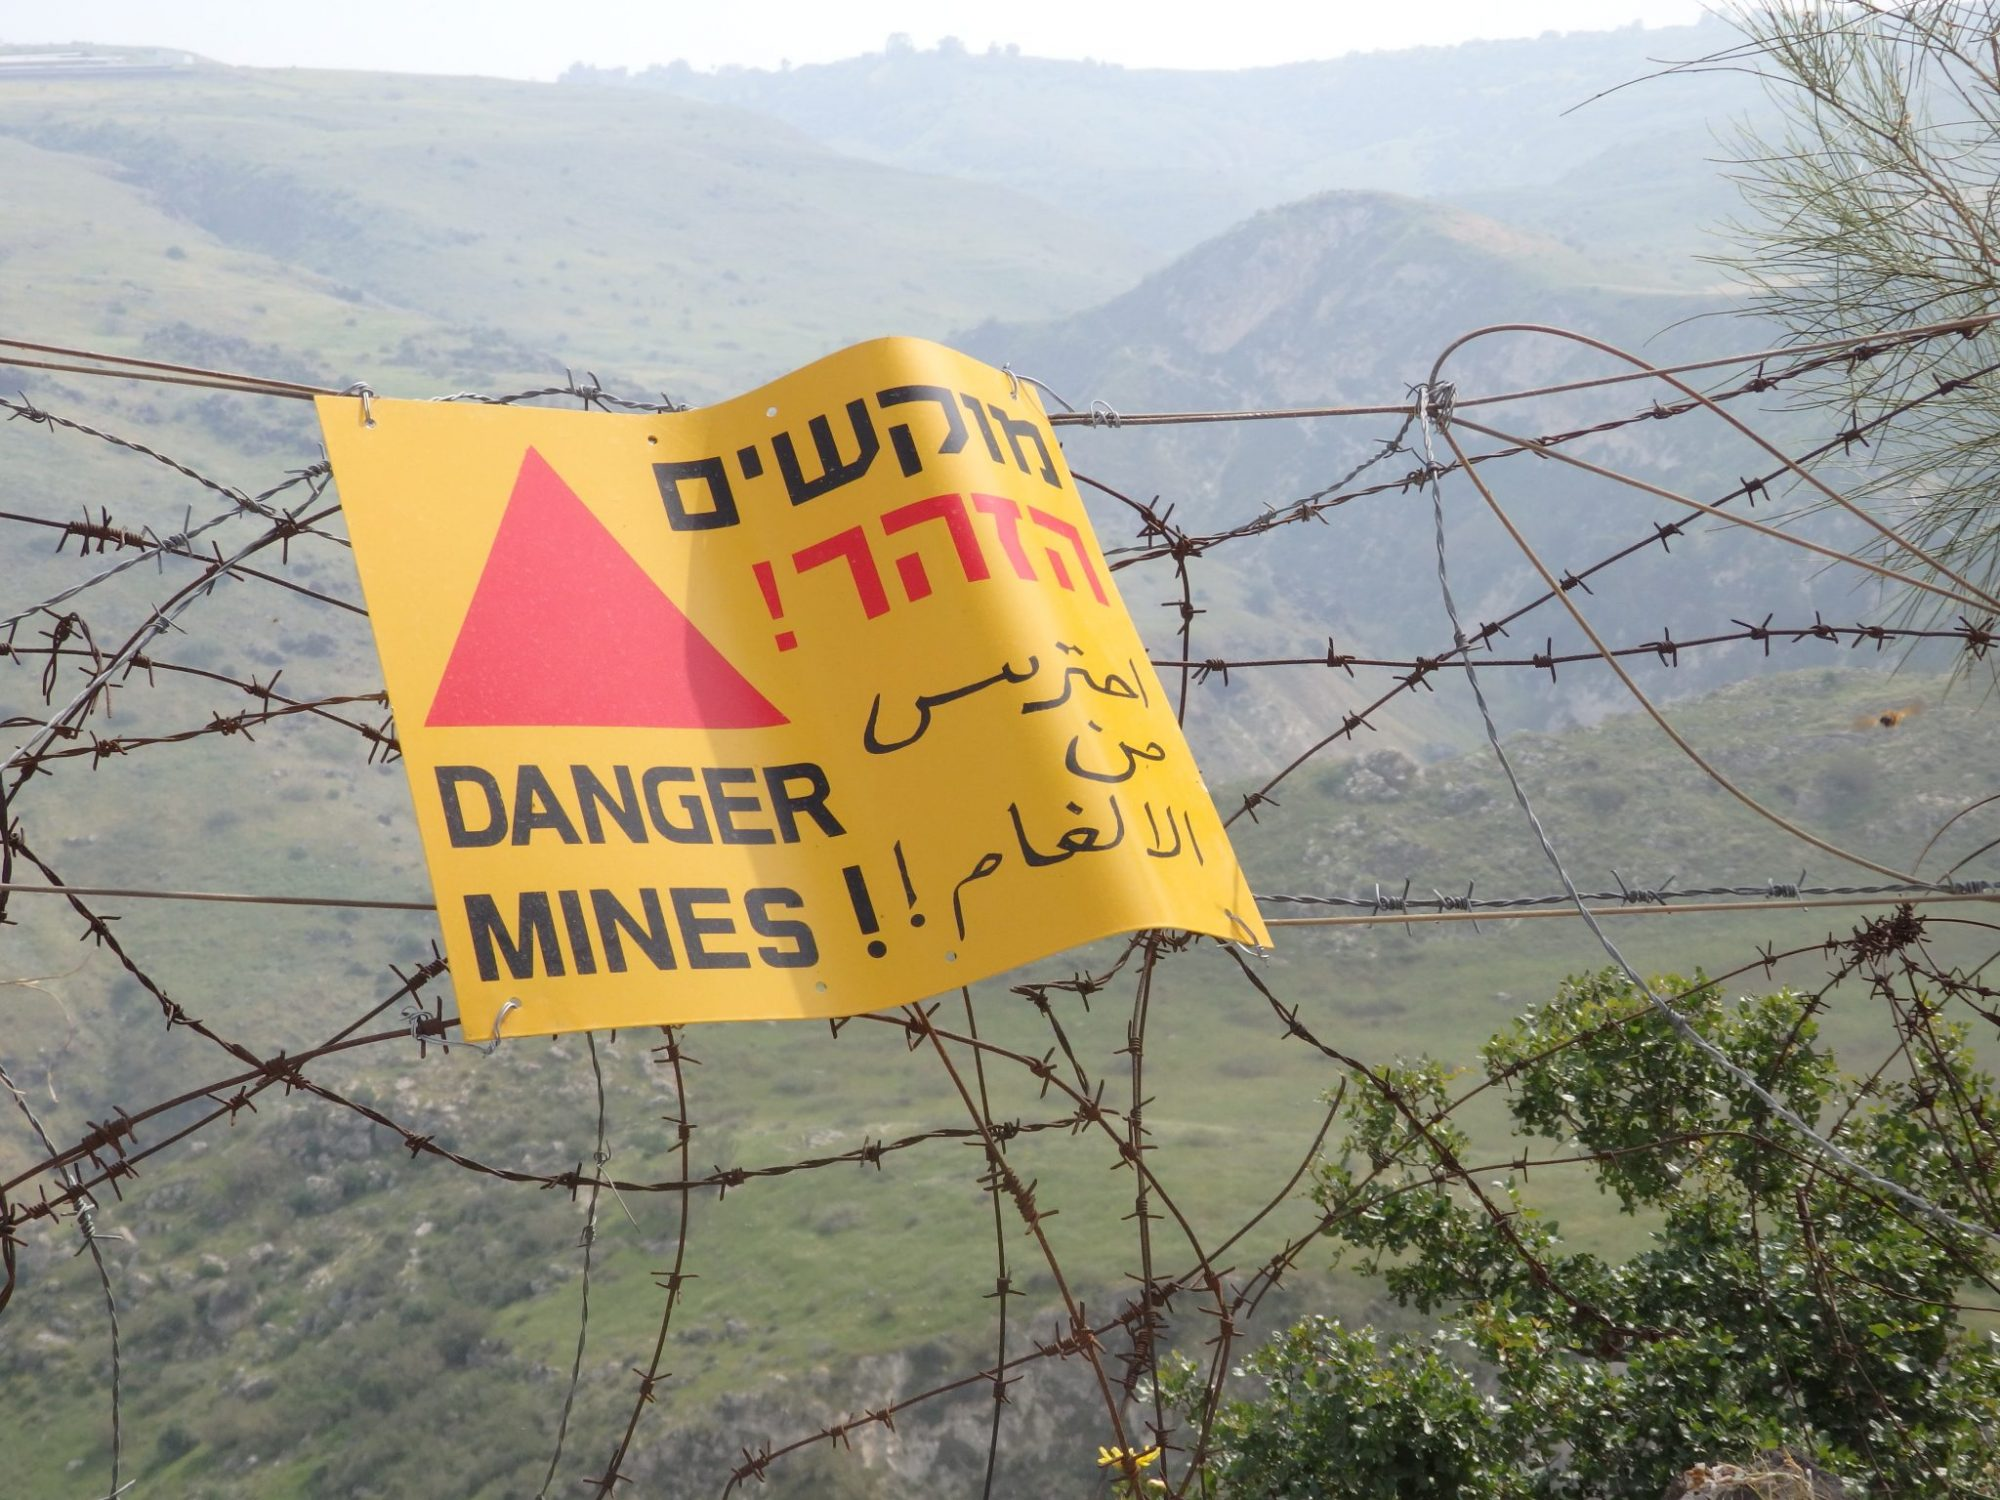 Besides beautiful scenery, in the Golan youll see many indications that a war was fought here not too long ago.